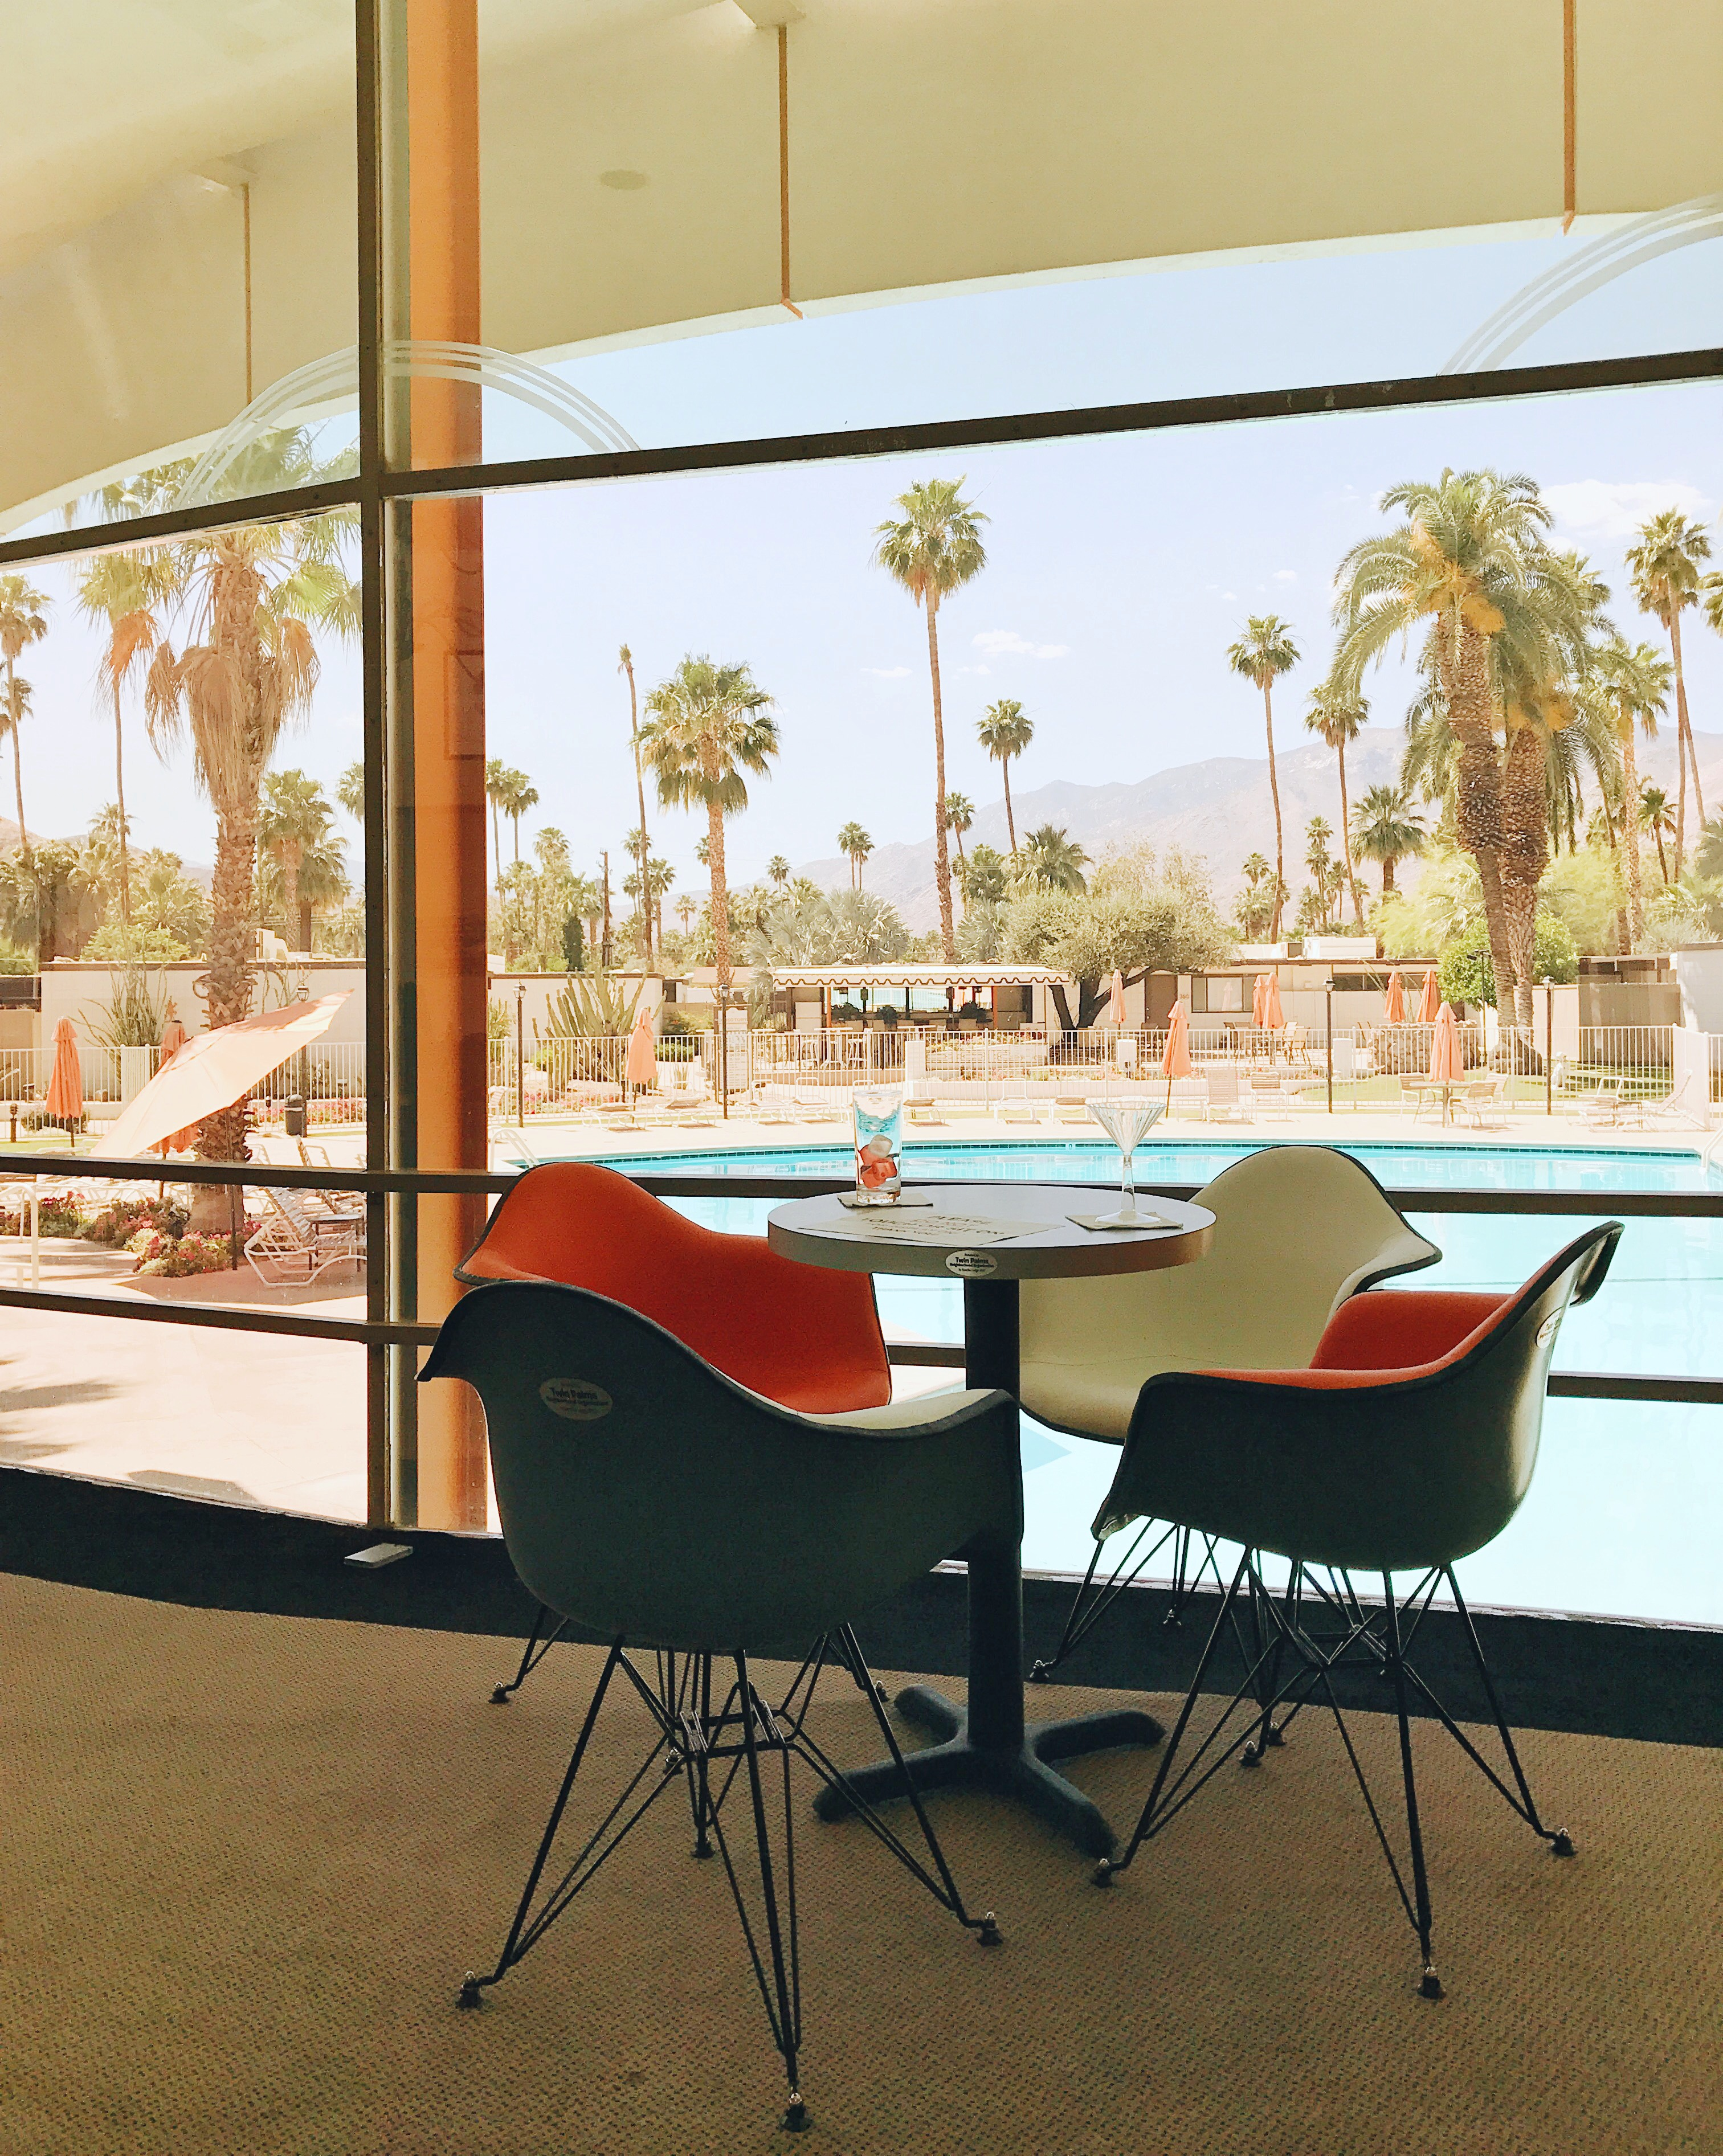 jojotastic travel guide and visual diary for palm springs. mid century modern airbnb rental at the ocotillo lodge.